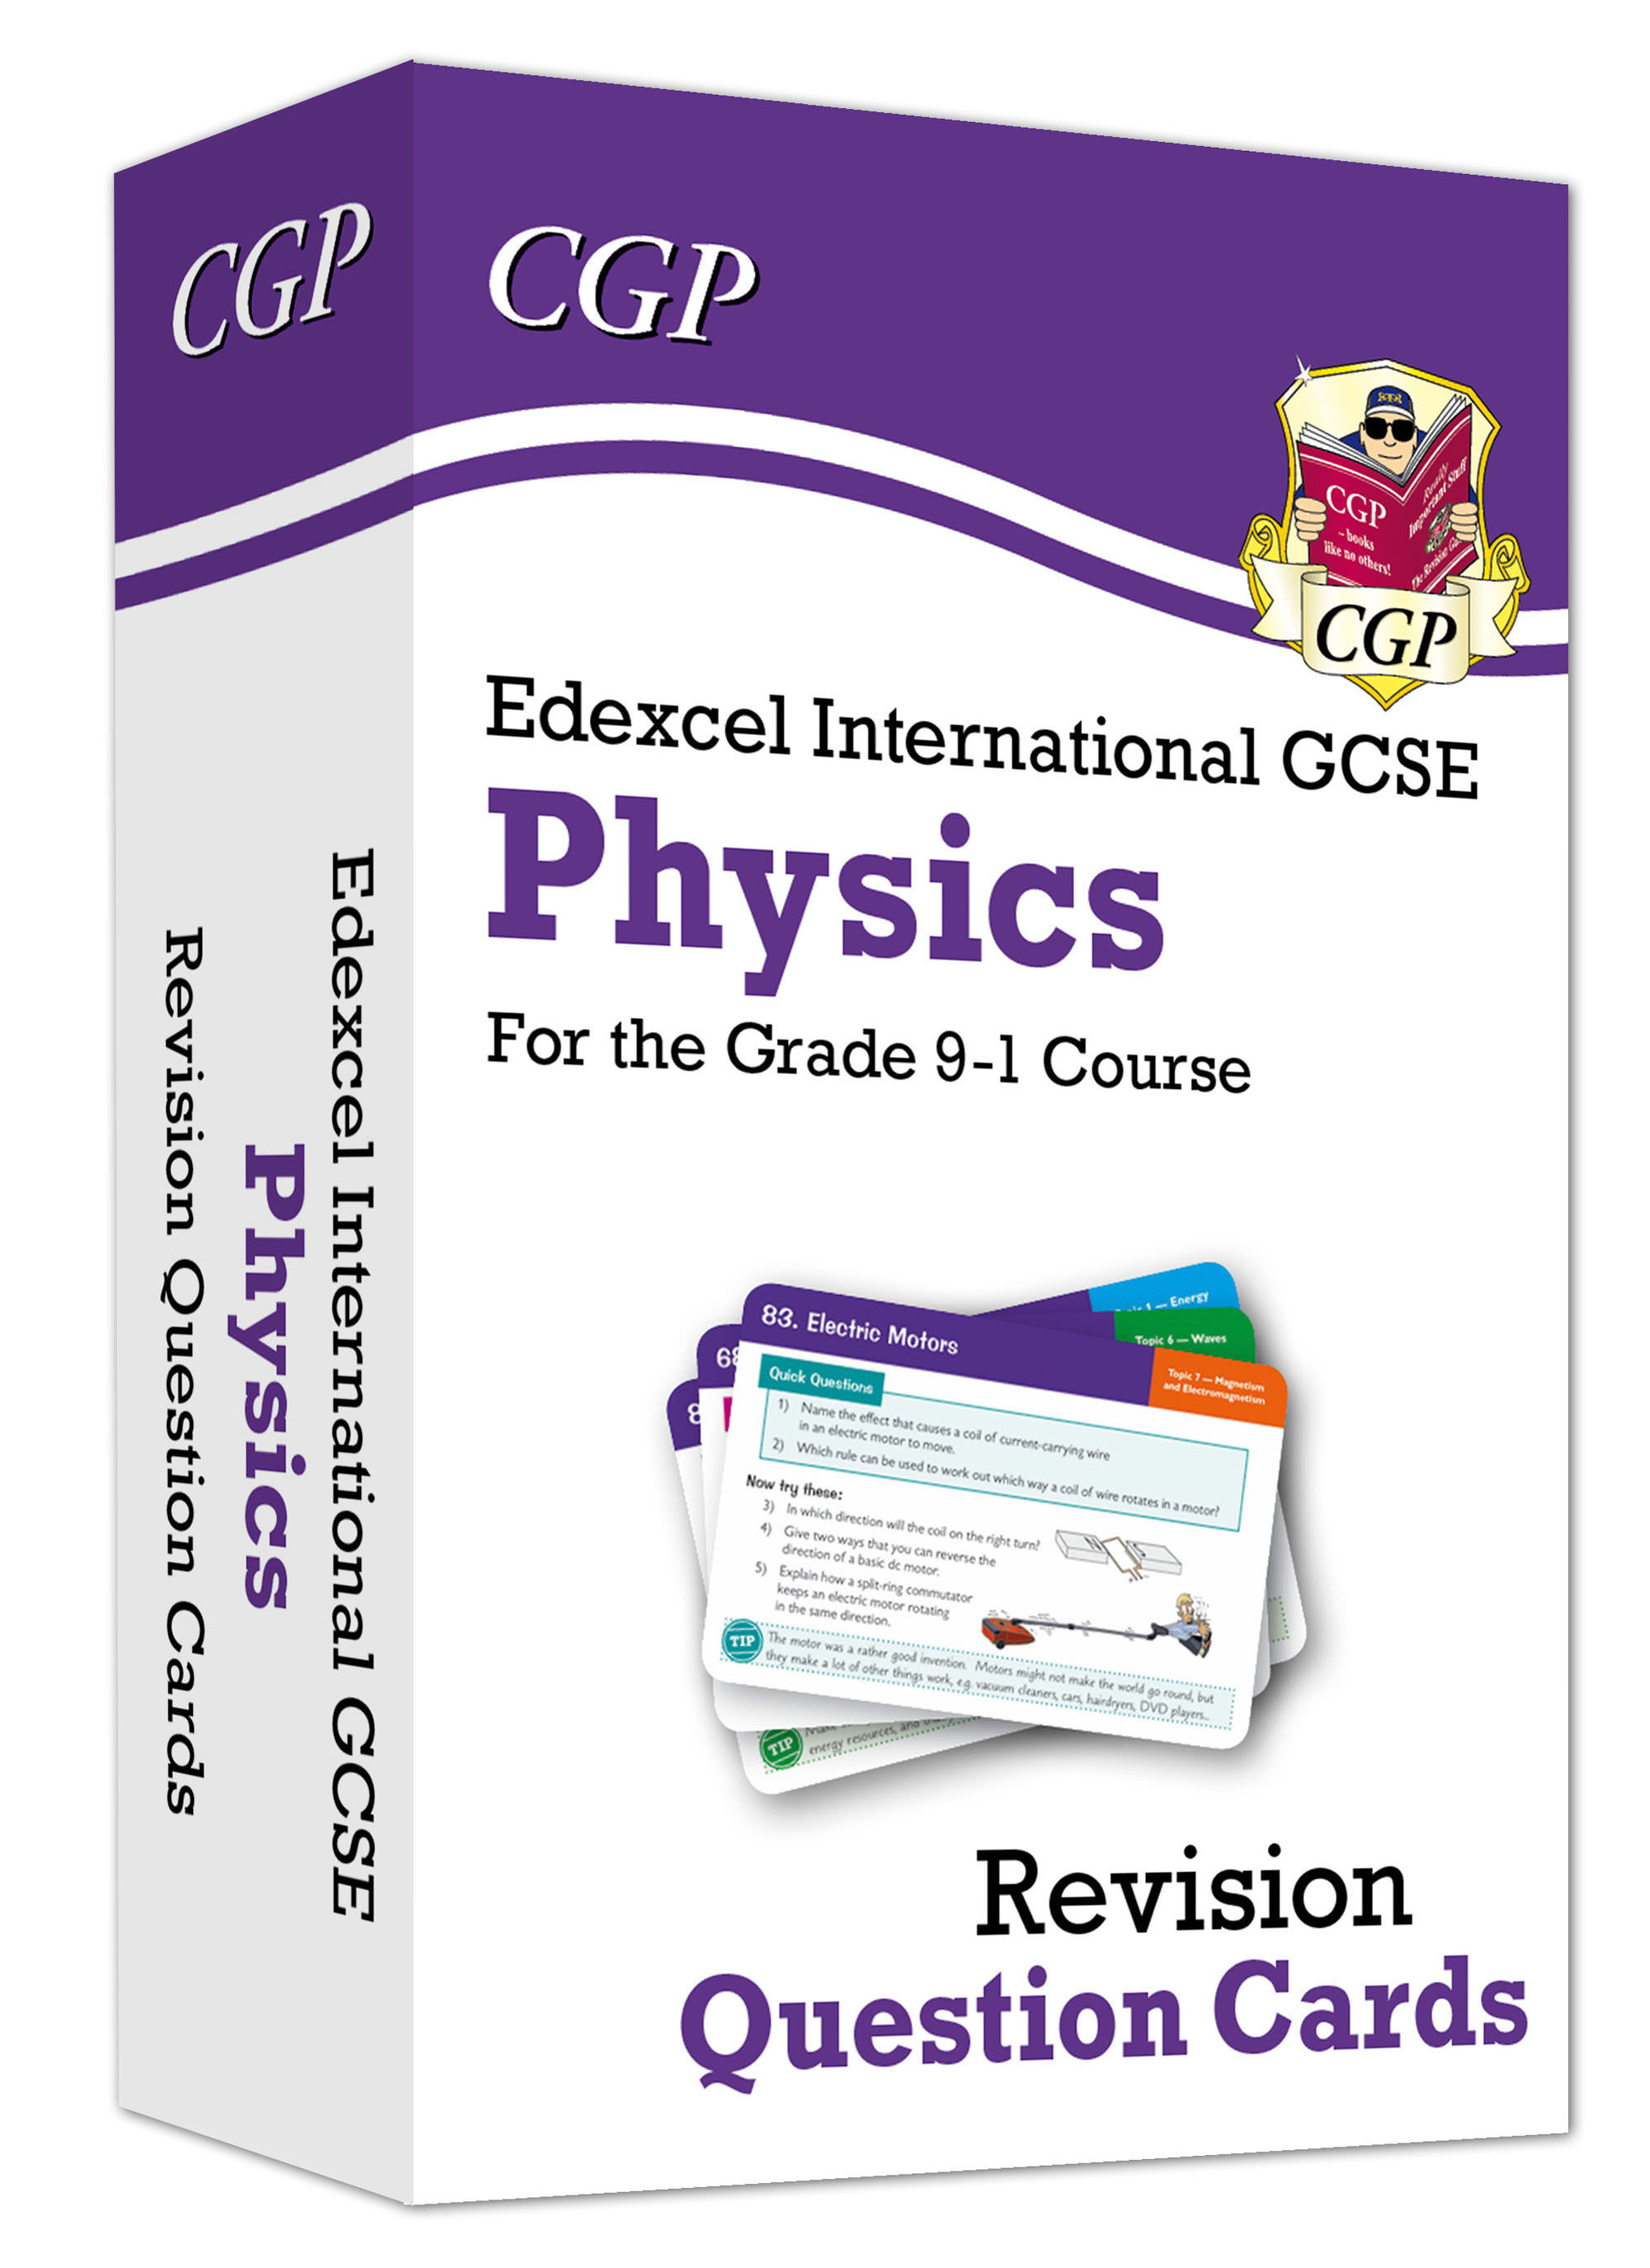 PEFI41D - New Grade 9-1 Edexcel International GCSE Physics: Revision Question Cards Online Edition